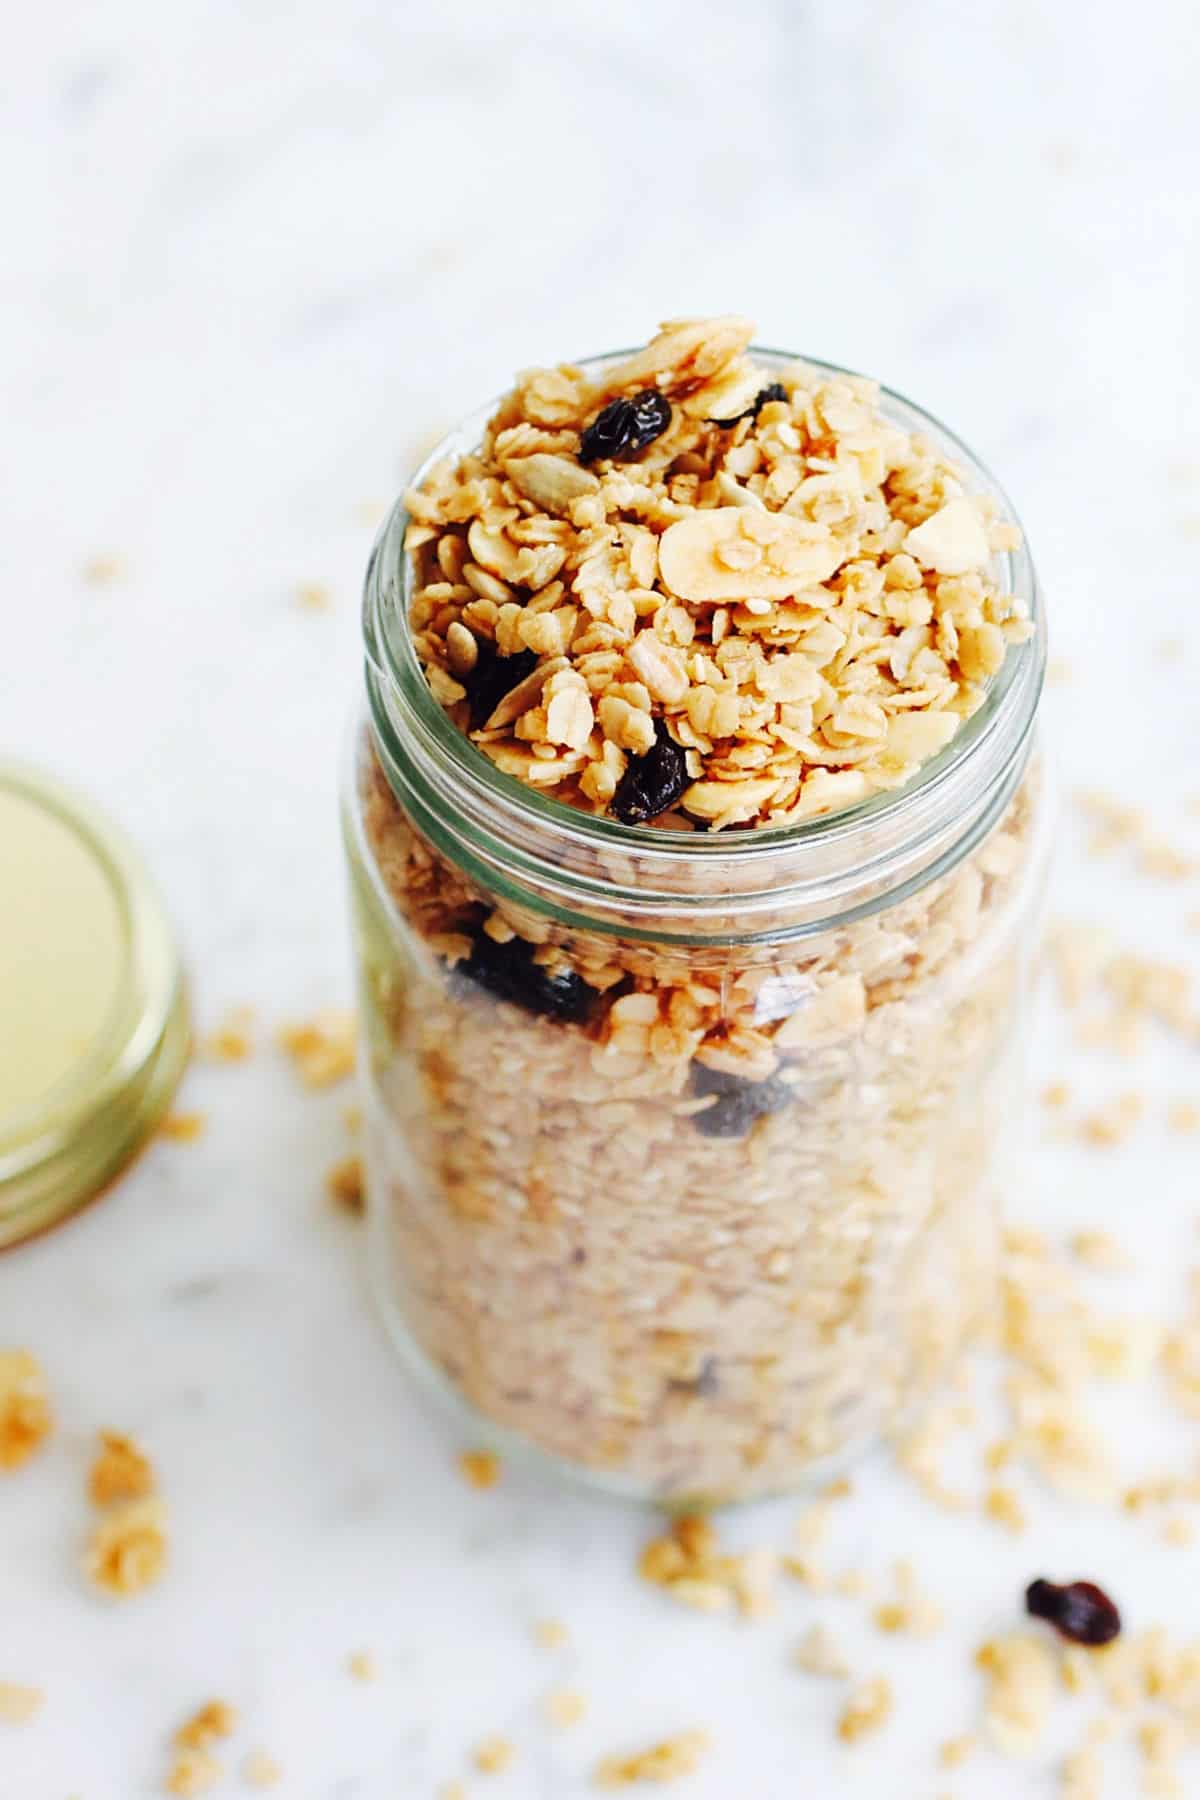 Tall glass jar with granola on a white surface